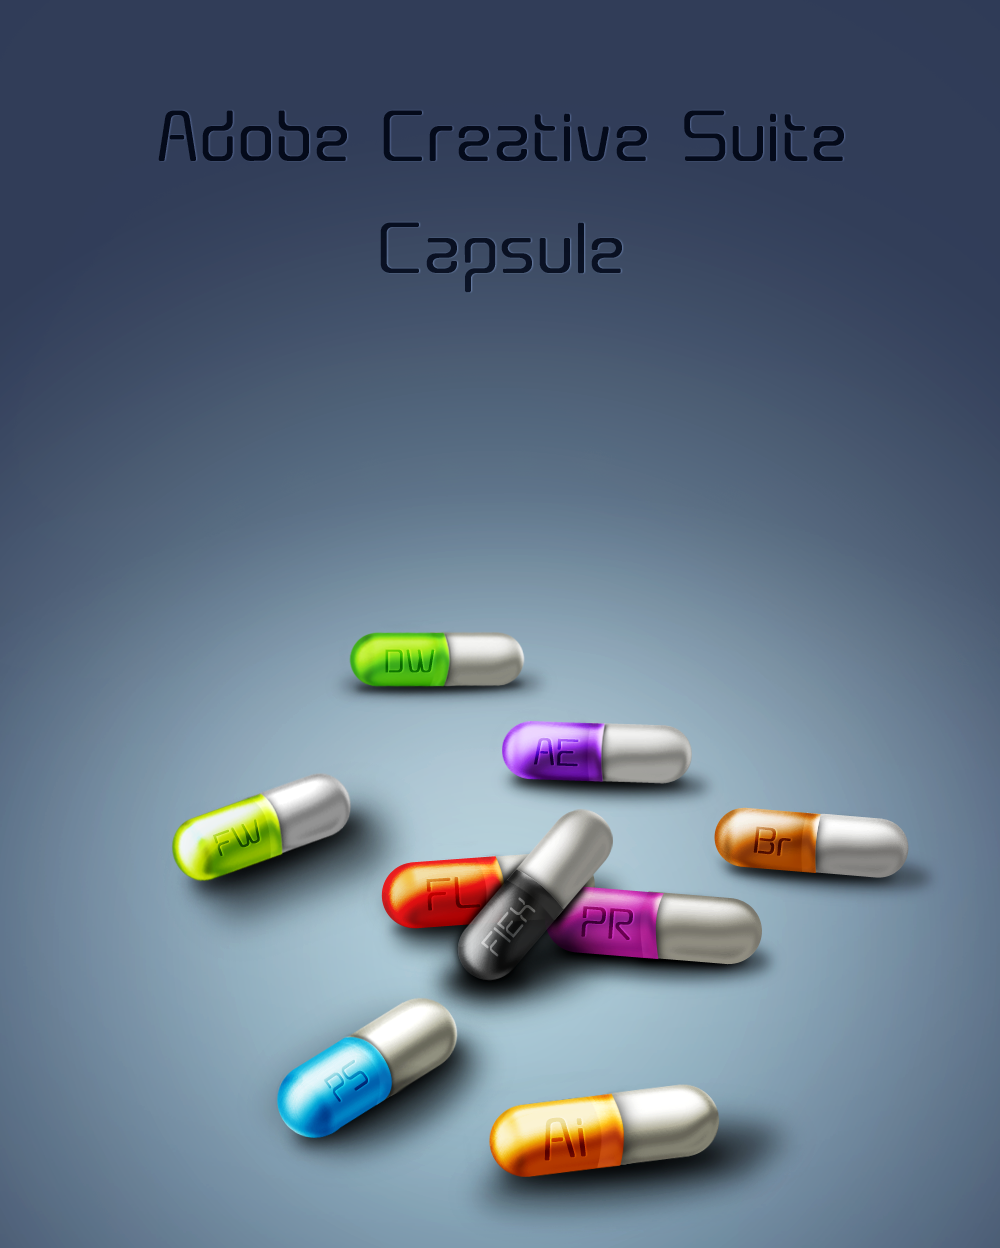 Adobe Creative Suite Capsule